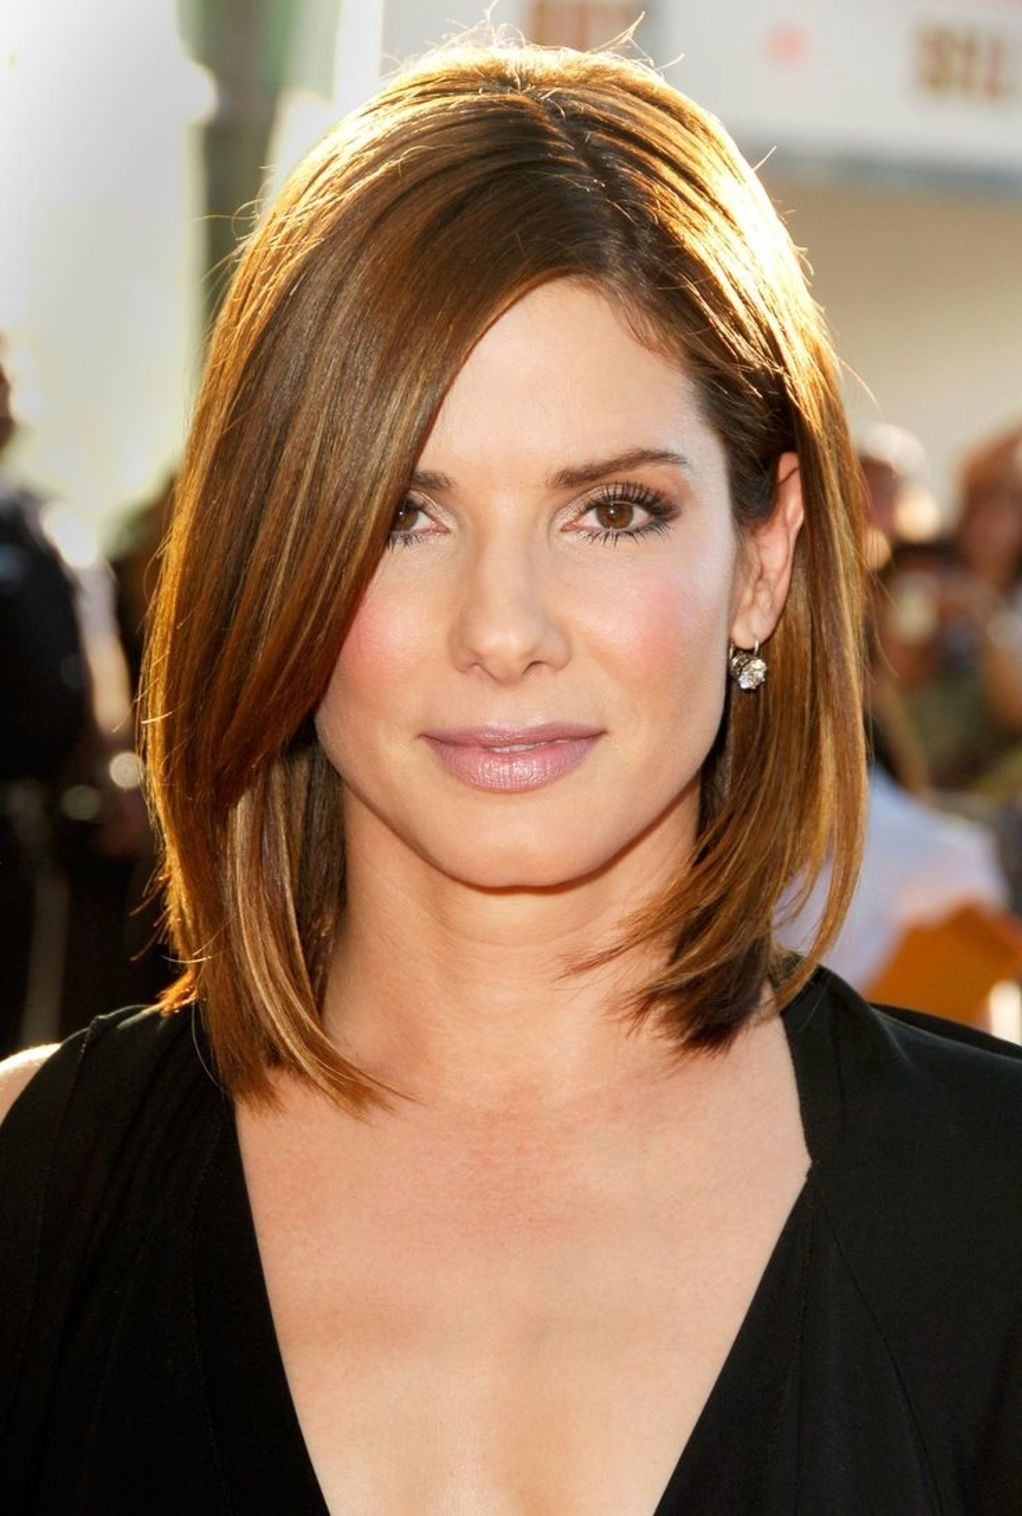 What Is The Best Way To Make Fine, Straight Hair Look Thicker inside Haircut For Thin Straight Hair To Look Thicker